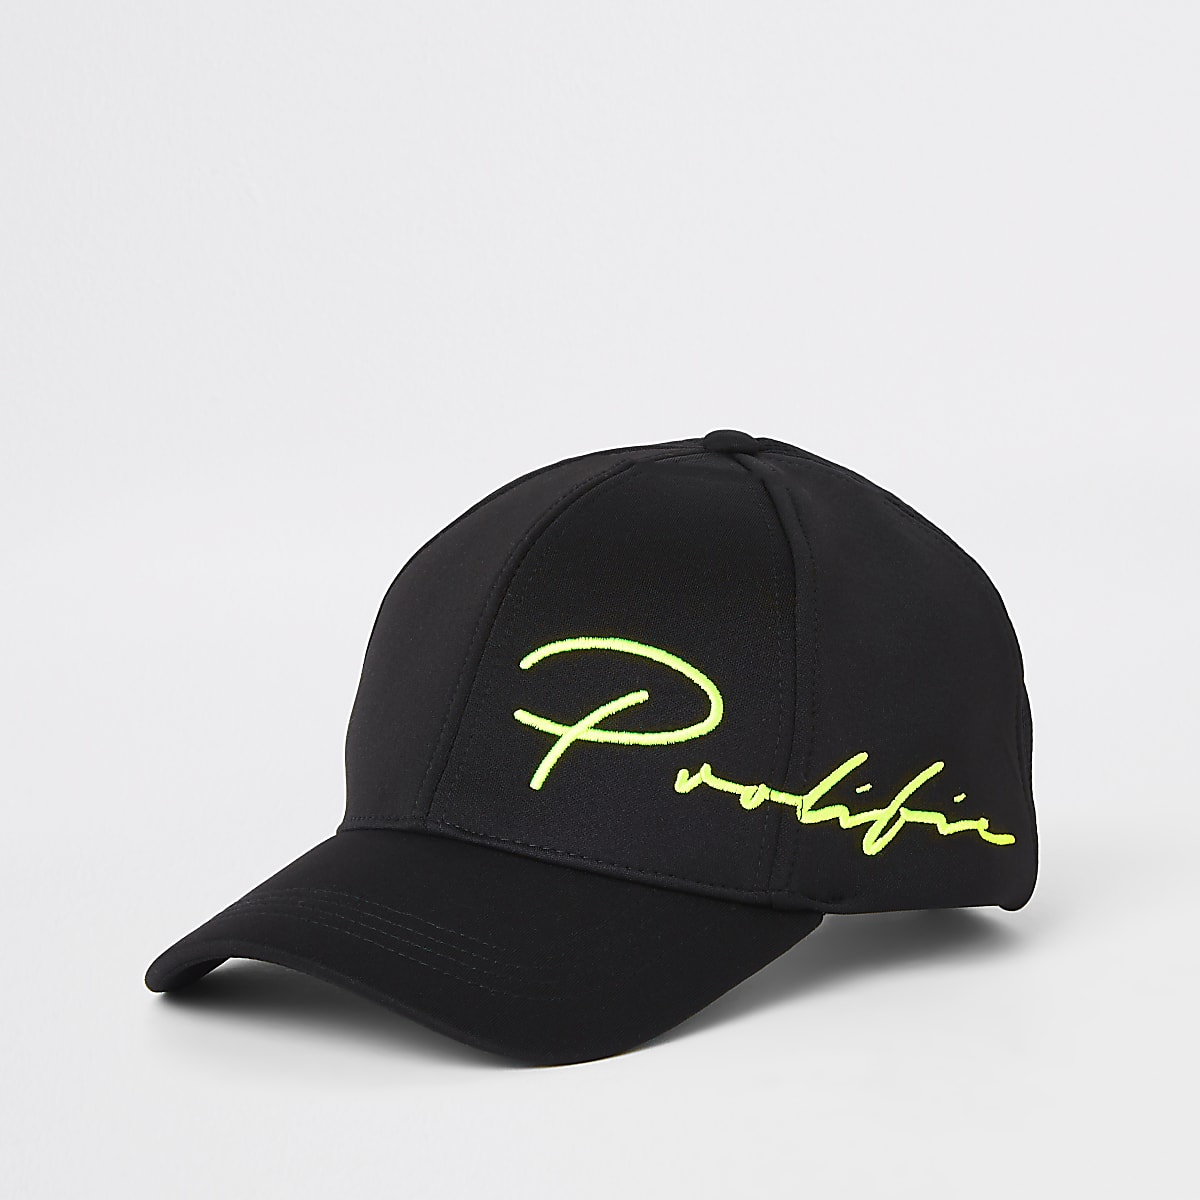 Black 'Prolific' embroidered baseball cap